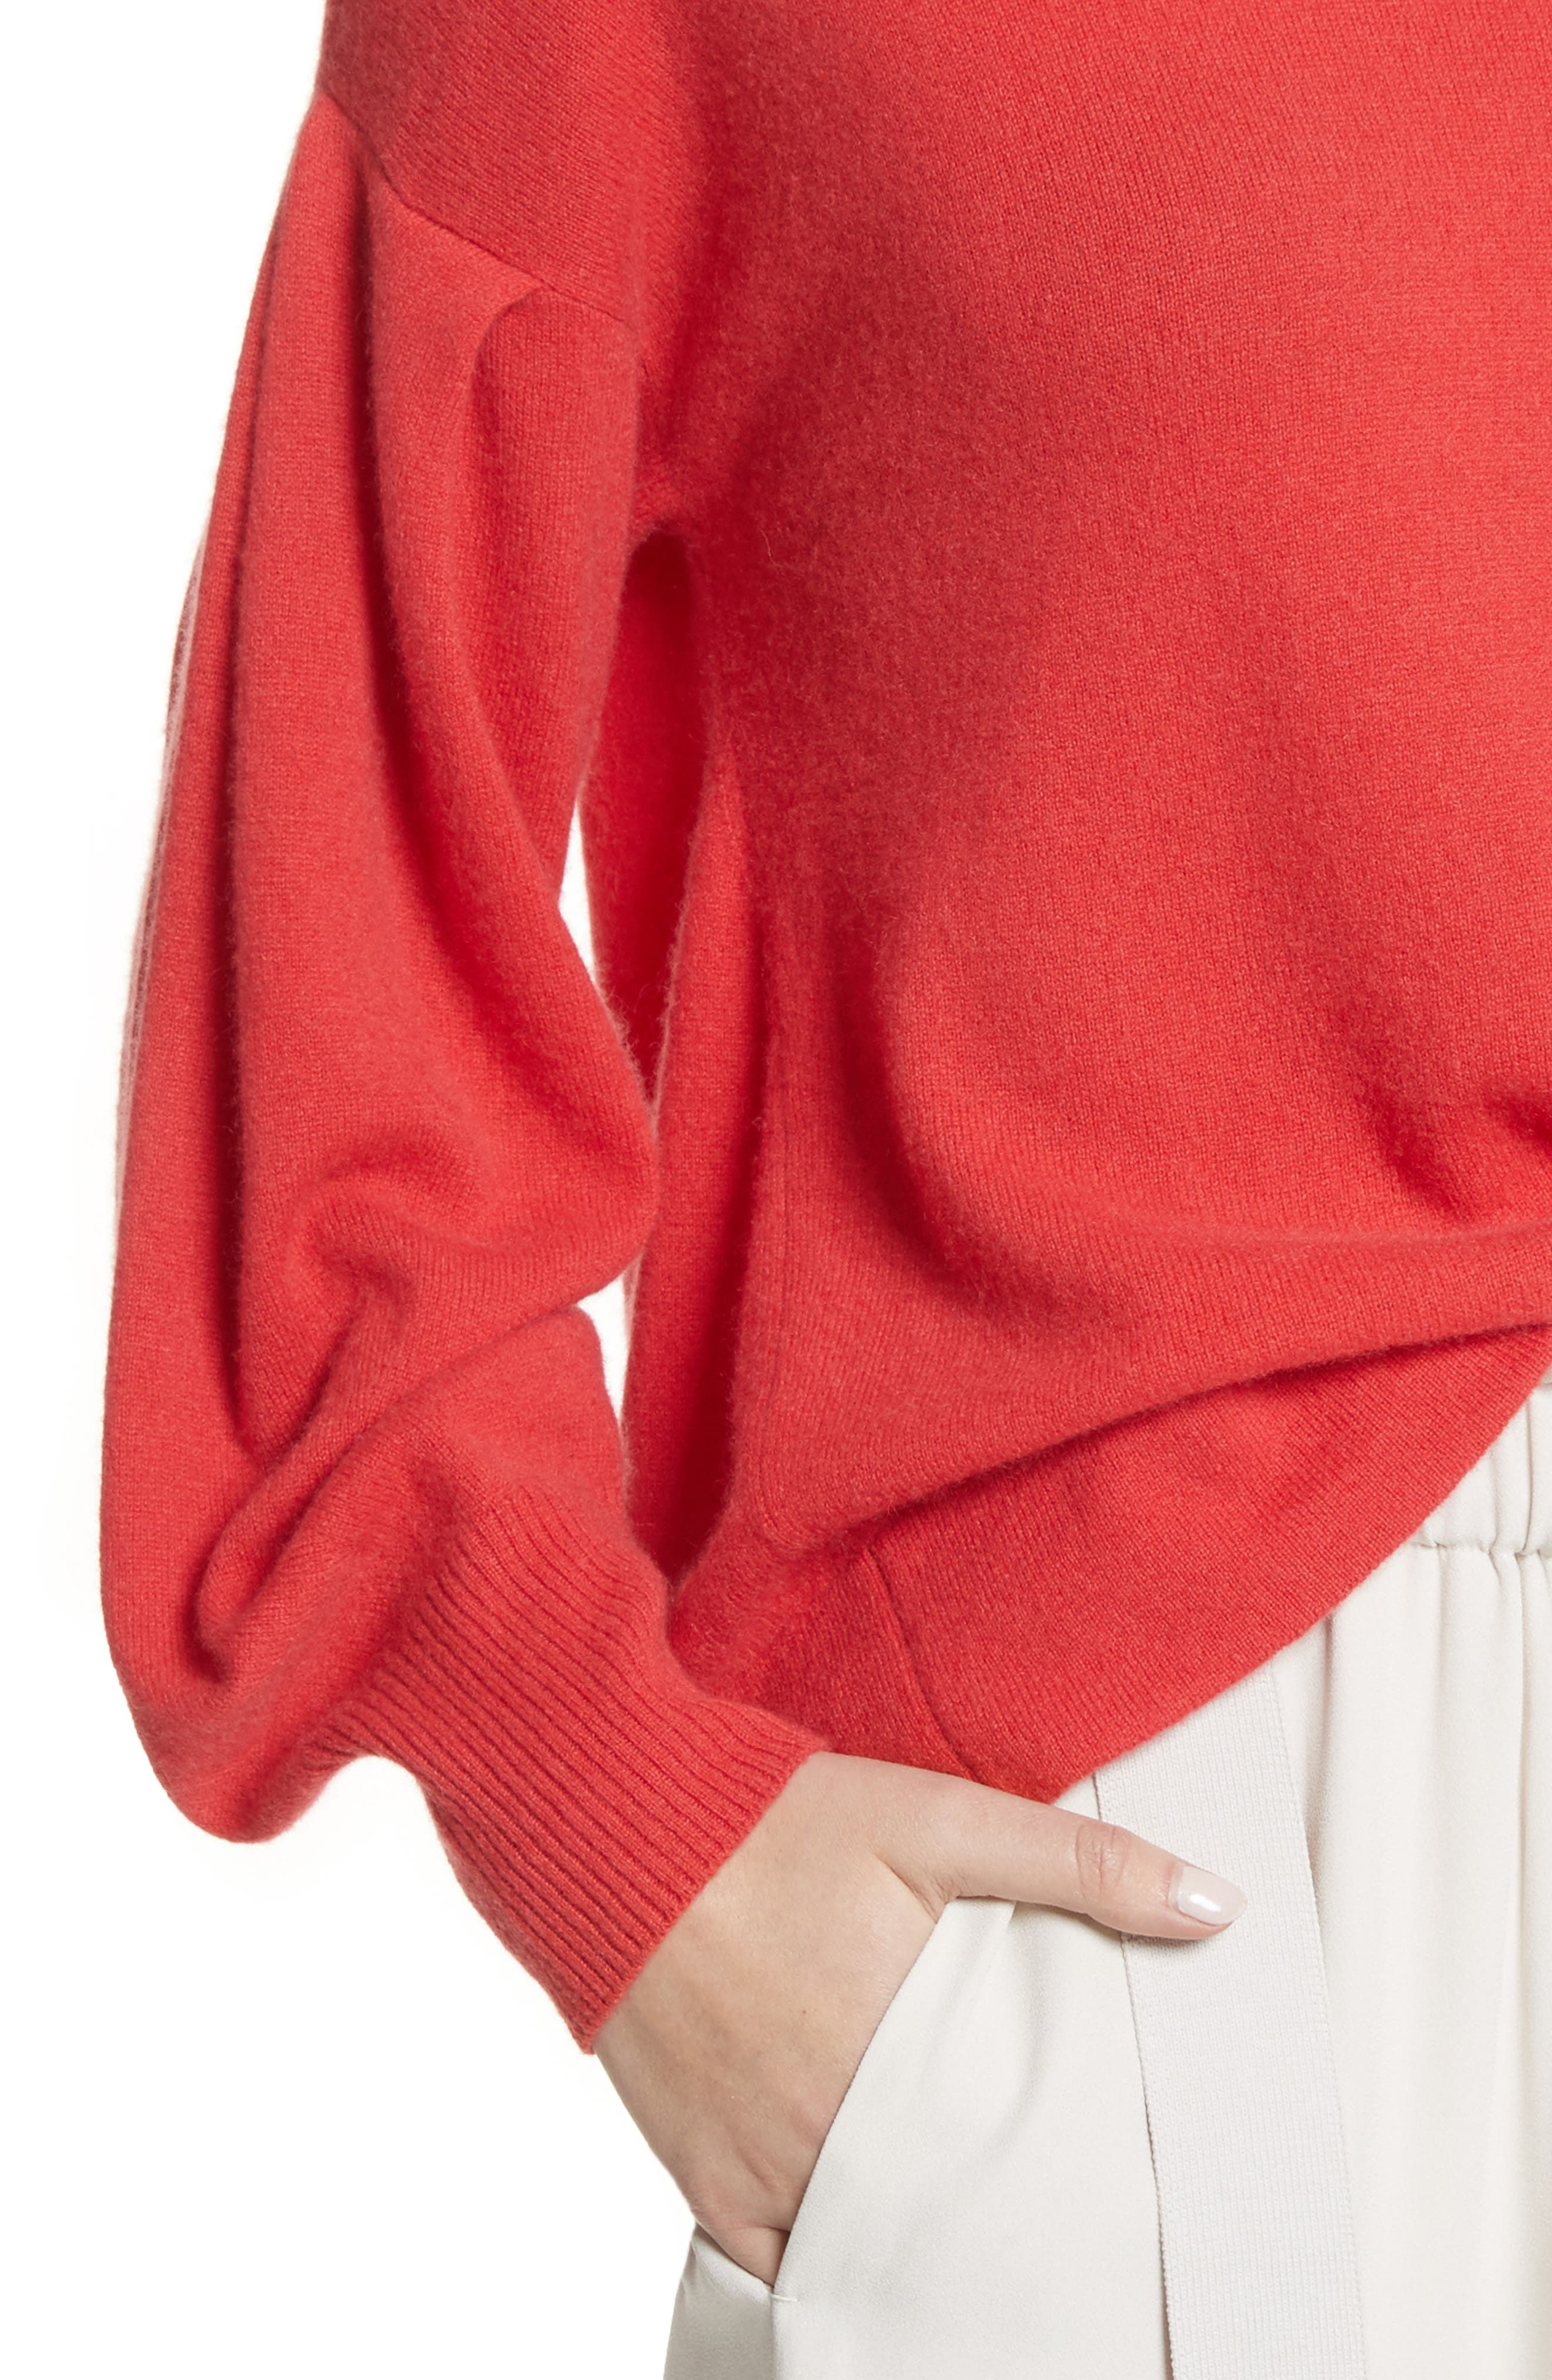 Pleat Sleeve Cashmere Sweater,                             Alternate thumbnail 5, color,                             Poppy